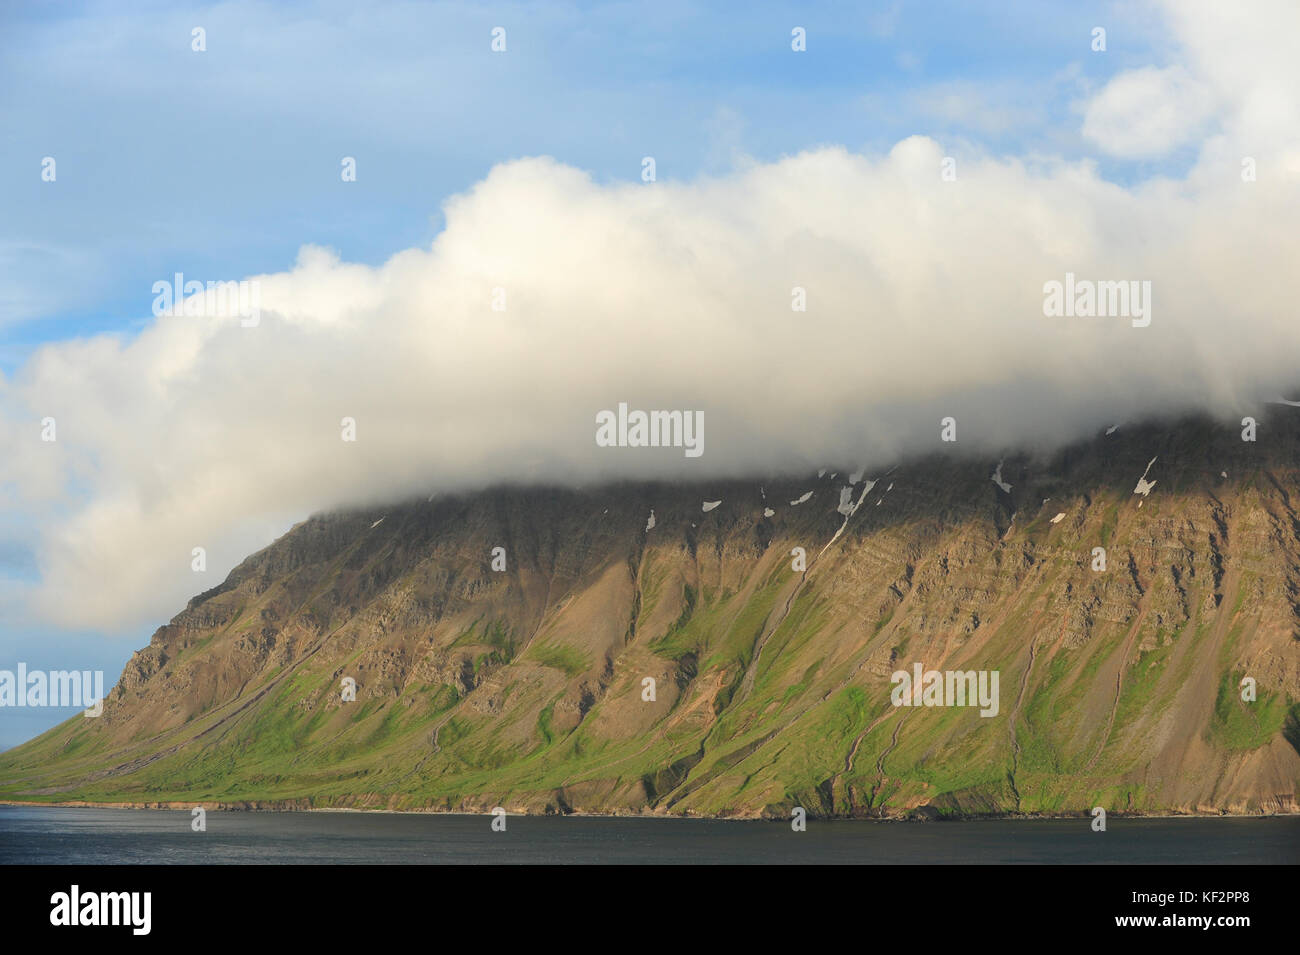 Cloud cover over mountain top and blue skies in Siglufjordur, North Iceland, Scandinavia - Stock Image